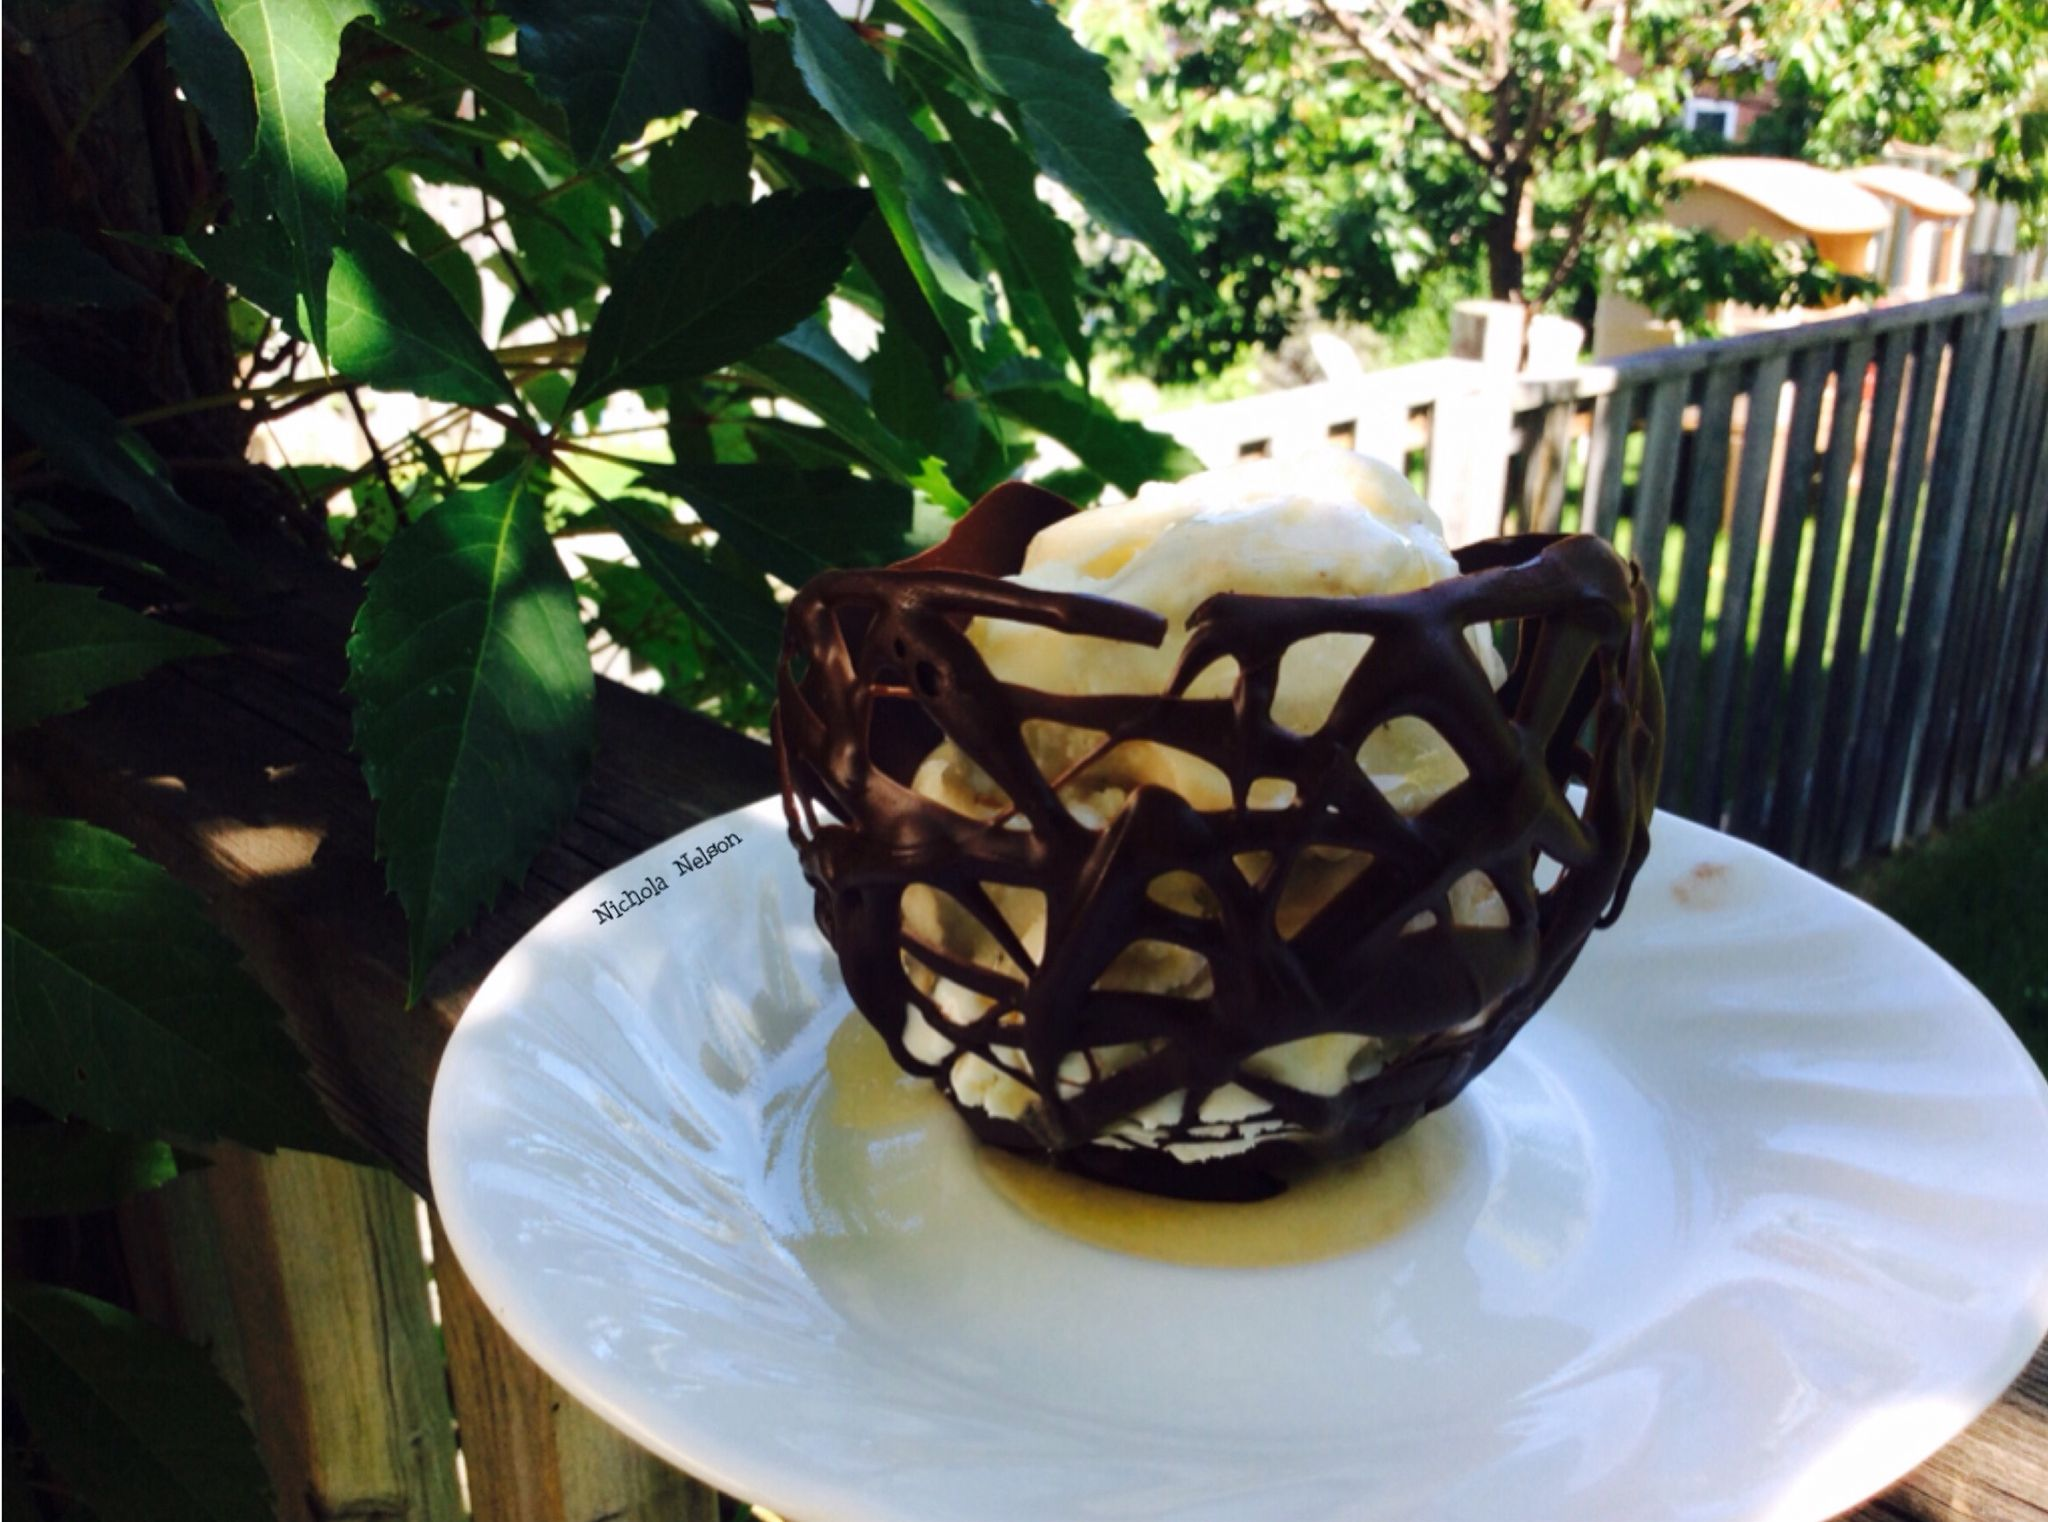 Make your own Chocolate Icecream Bowls! @nicky1818